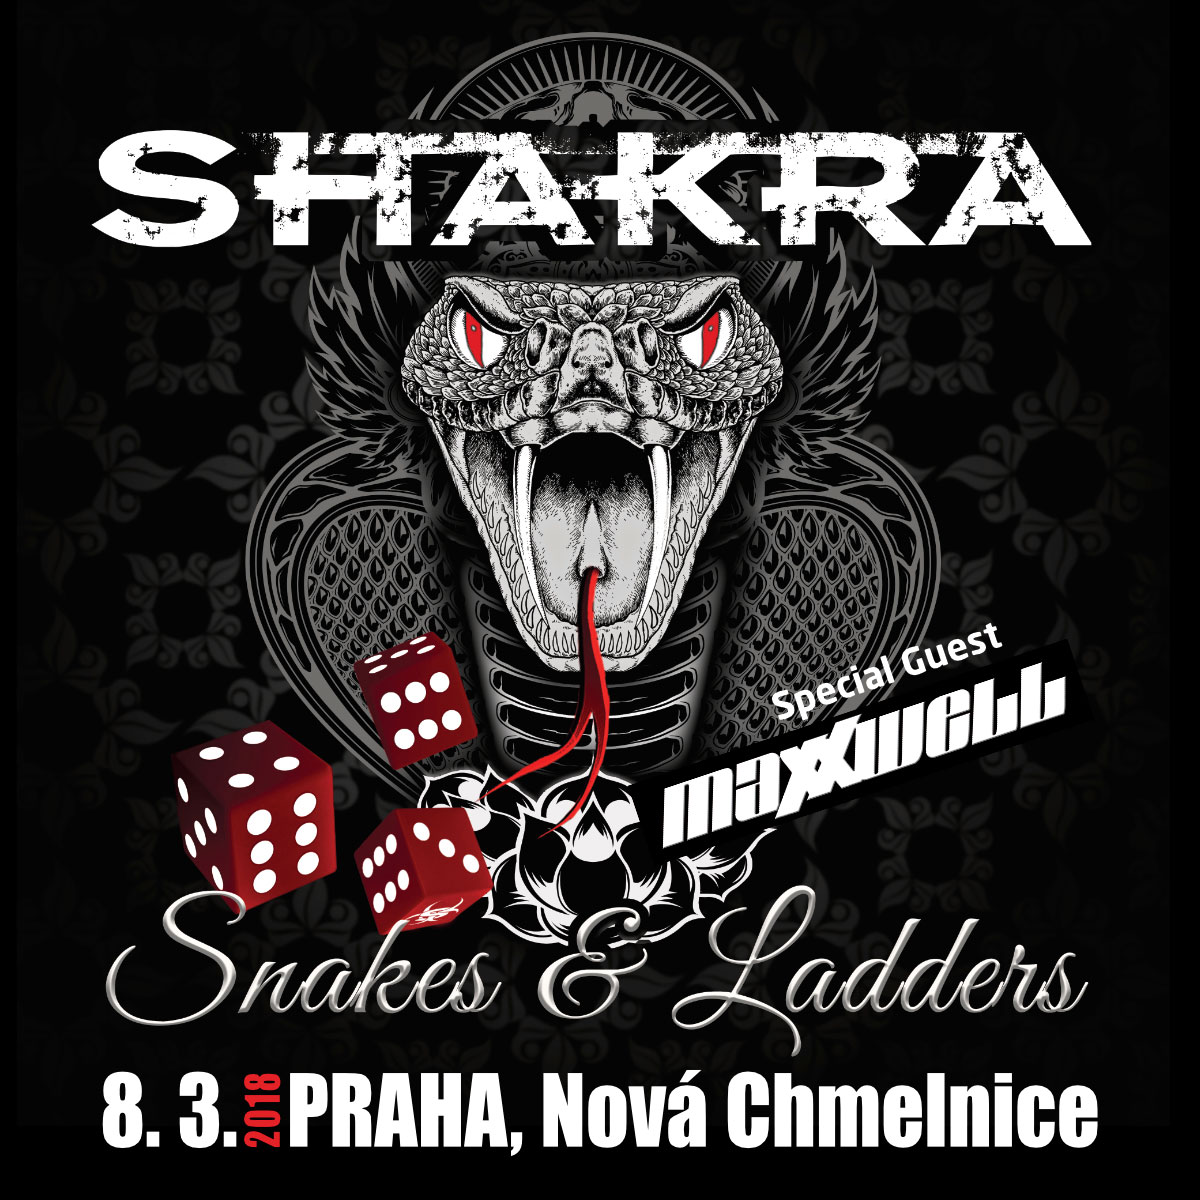 Snakes & Ladders Tour 2018